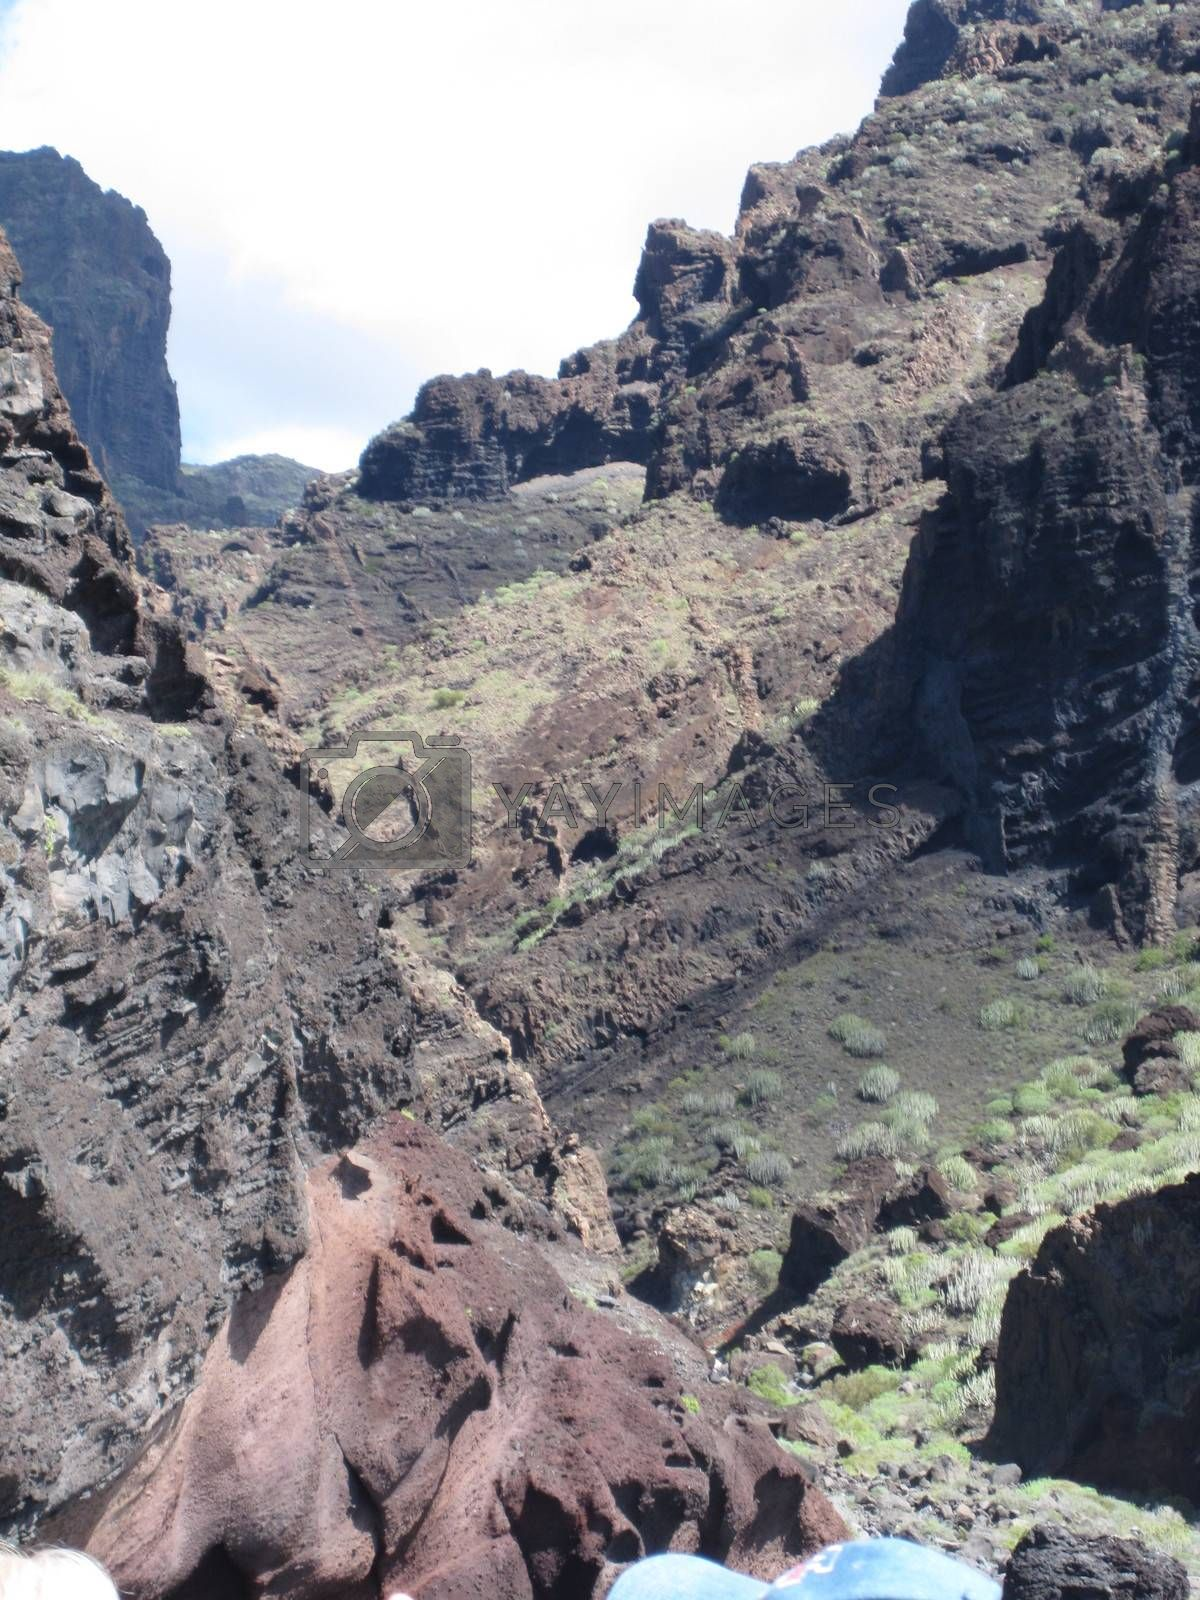 Masca valley at Tenerife